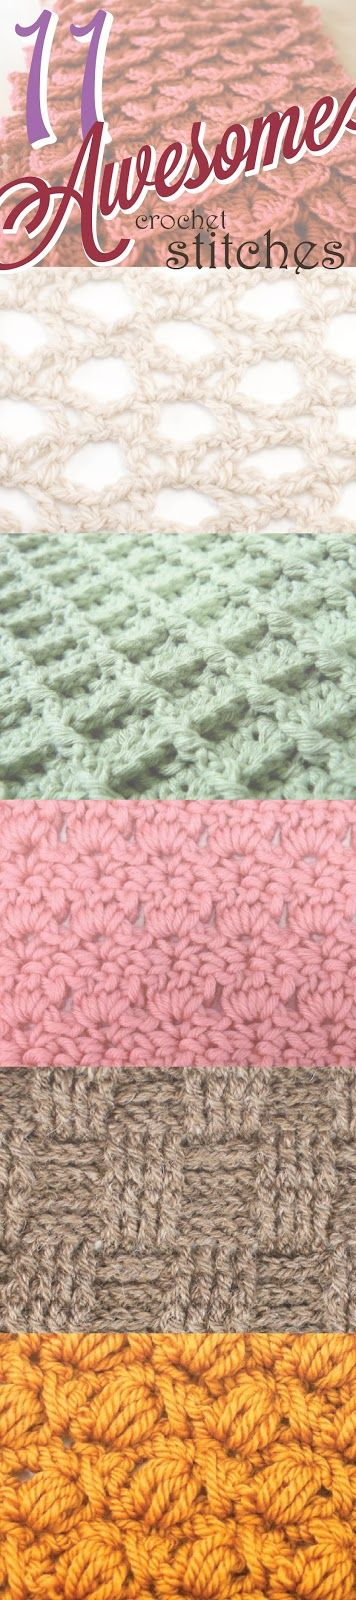 11 Awesome Crochet Stitches - Broomstick Lace, Crocodile Stitch, Star (Daisy) Stitch, Boxed Puff Stitch, Waffle Stitch, Intertwined Lacets Stitch, Cross-Over Long Double Crochet, Peacock Fan Stitch, Primrose Stitch, Bullion Stitch, Basketweave Stitch.